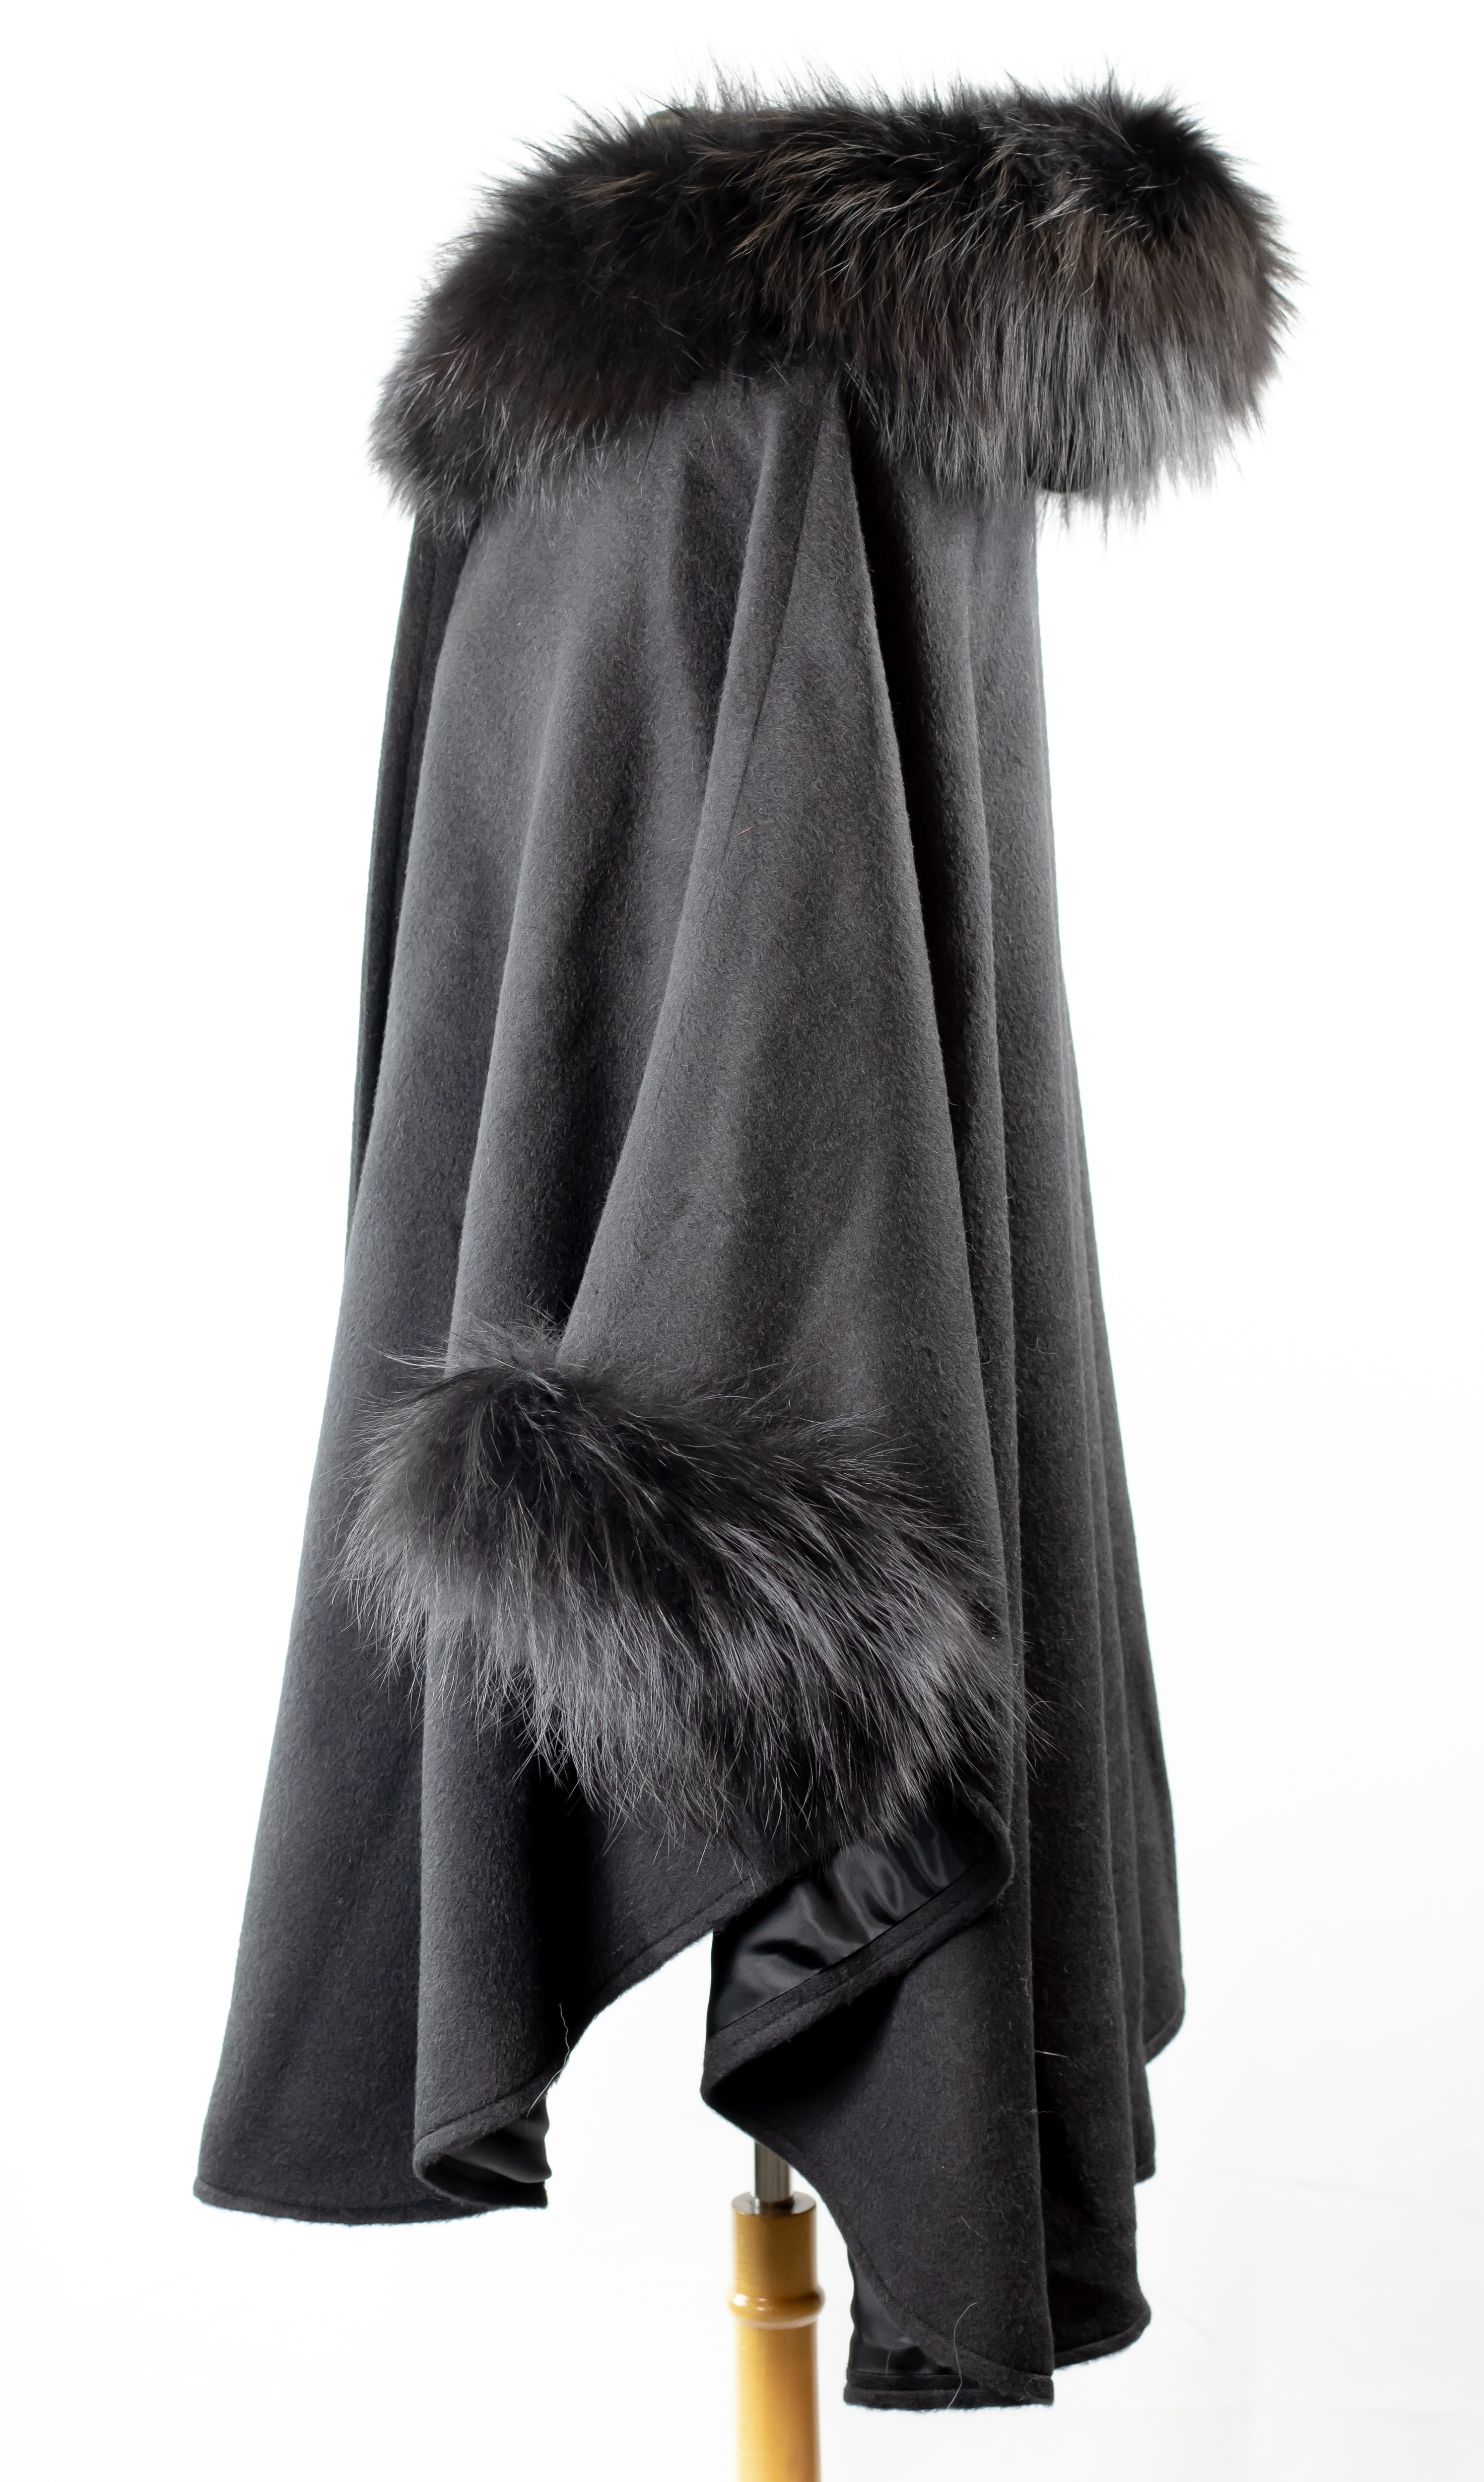 Black Woven Cape with Black Fox Trim on Hood and Cuffs